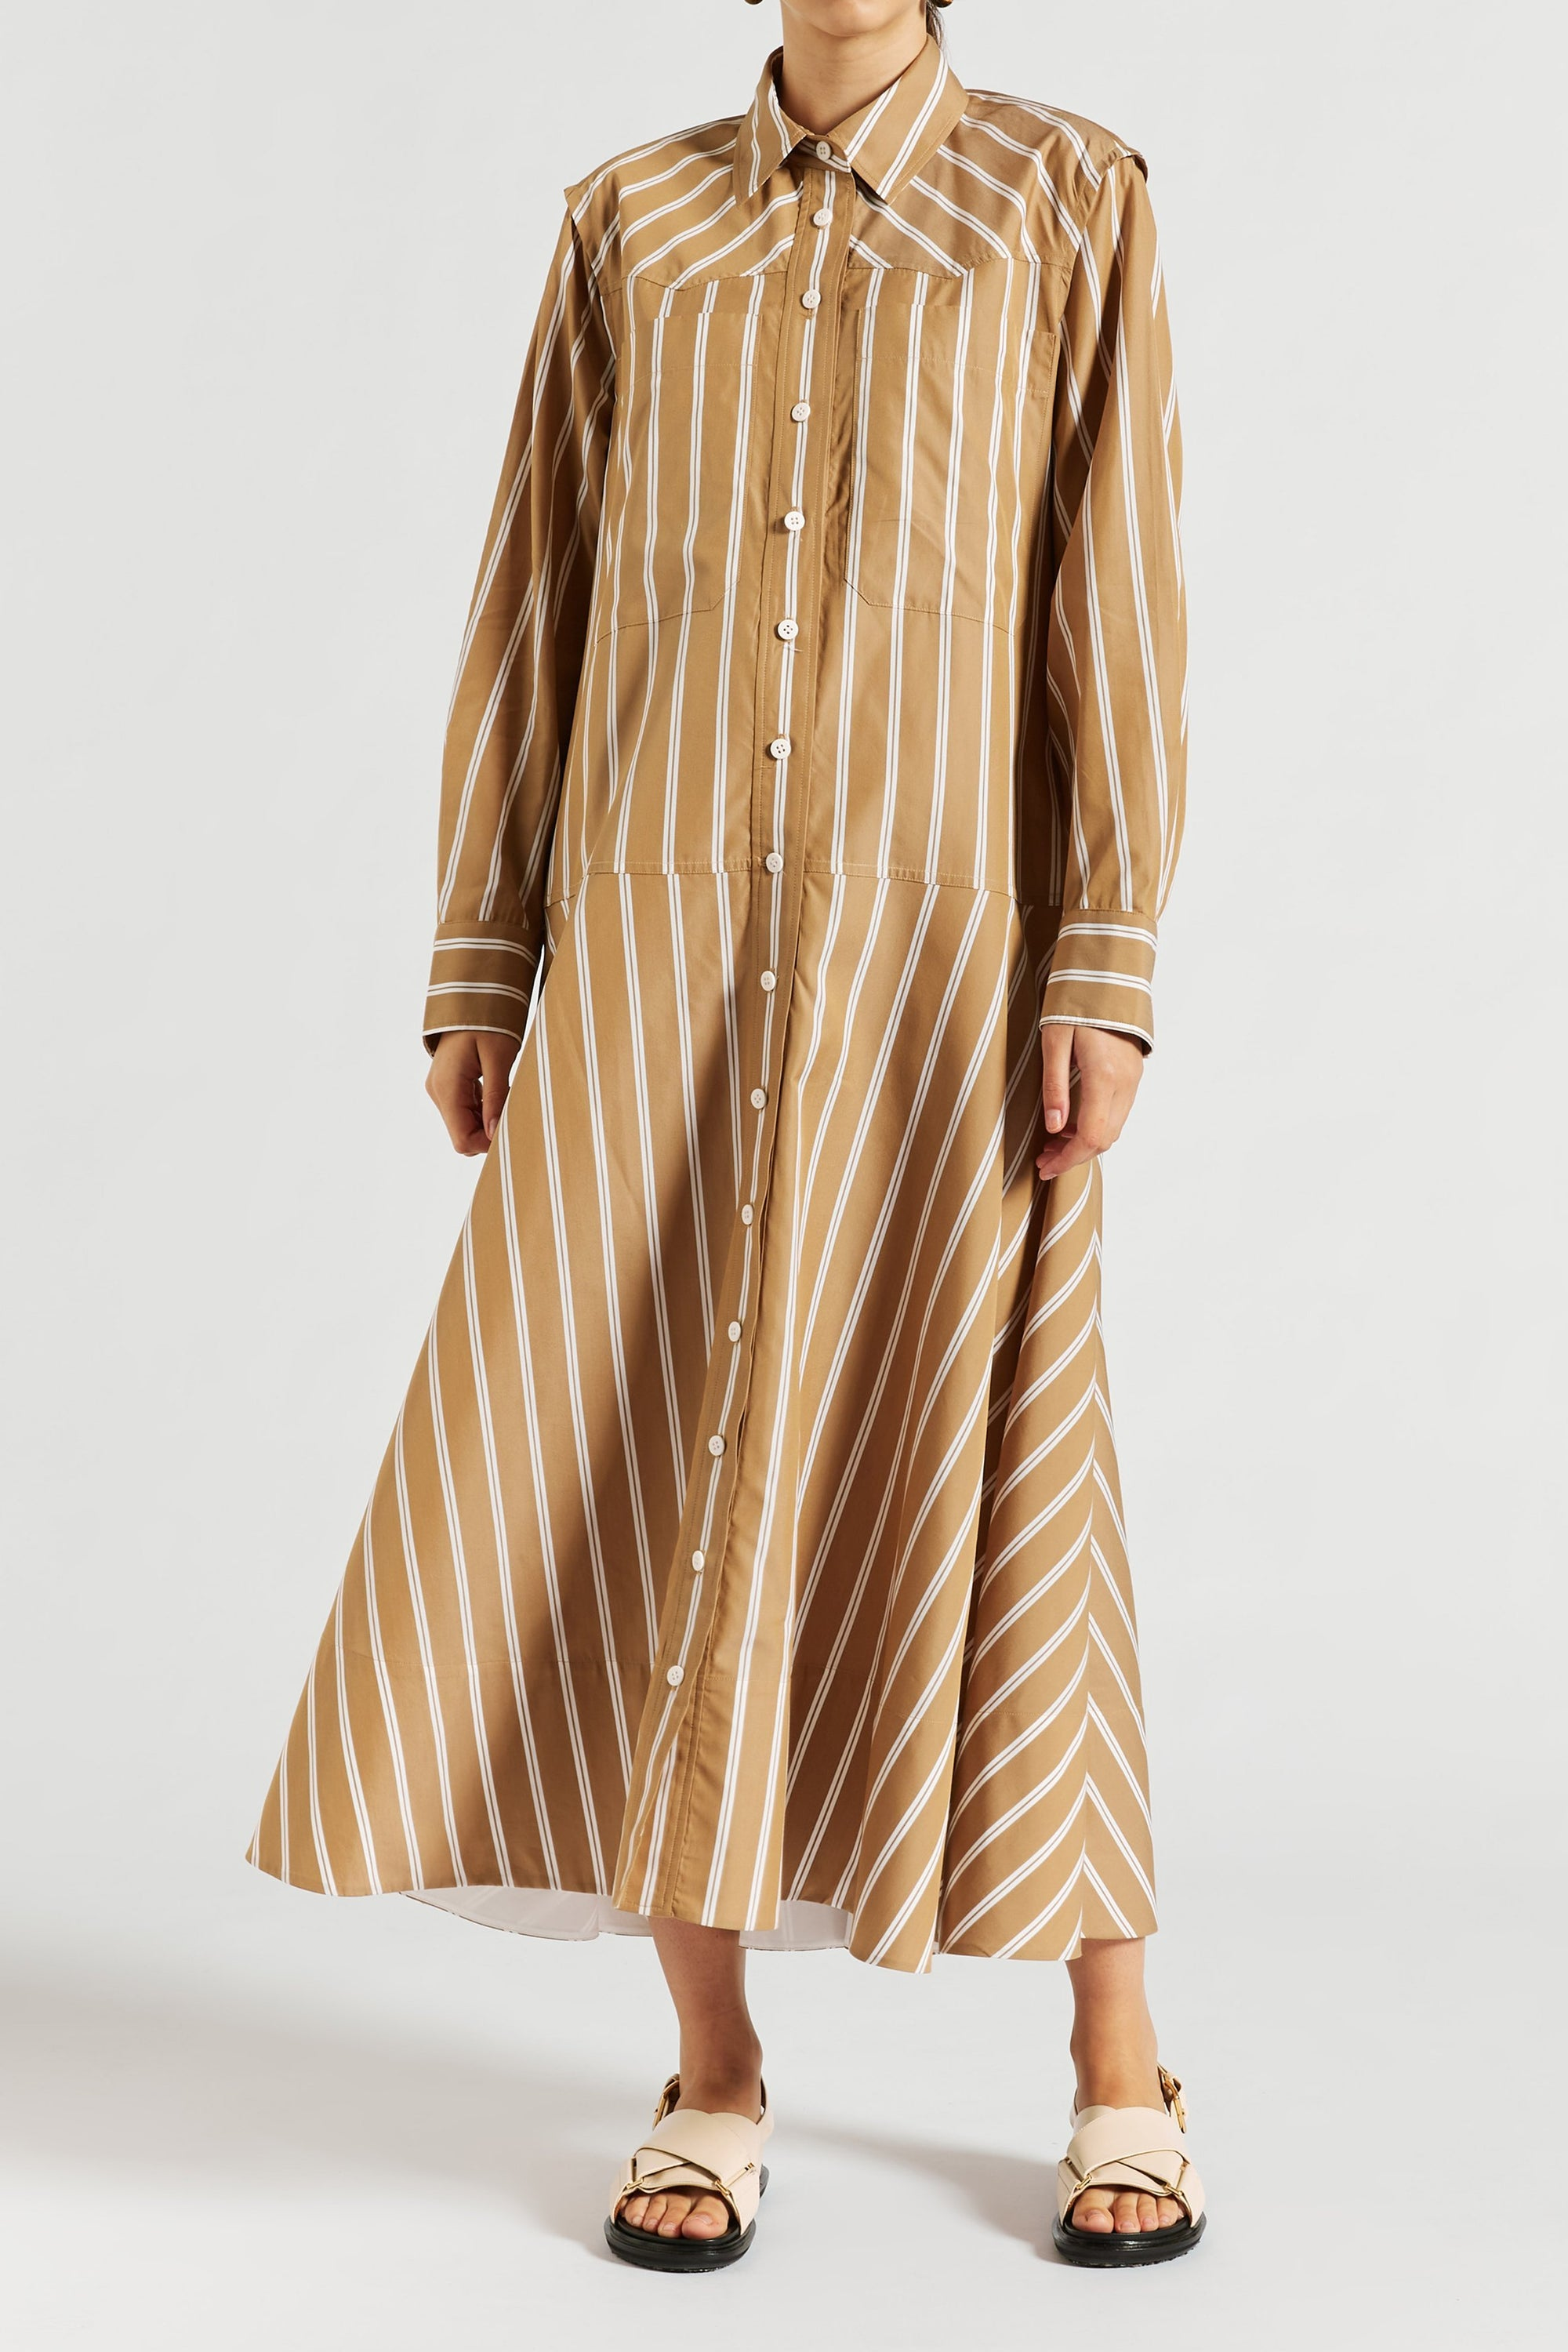 Ida Long Sleeve Shirtdress